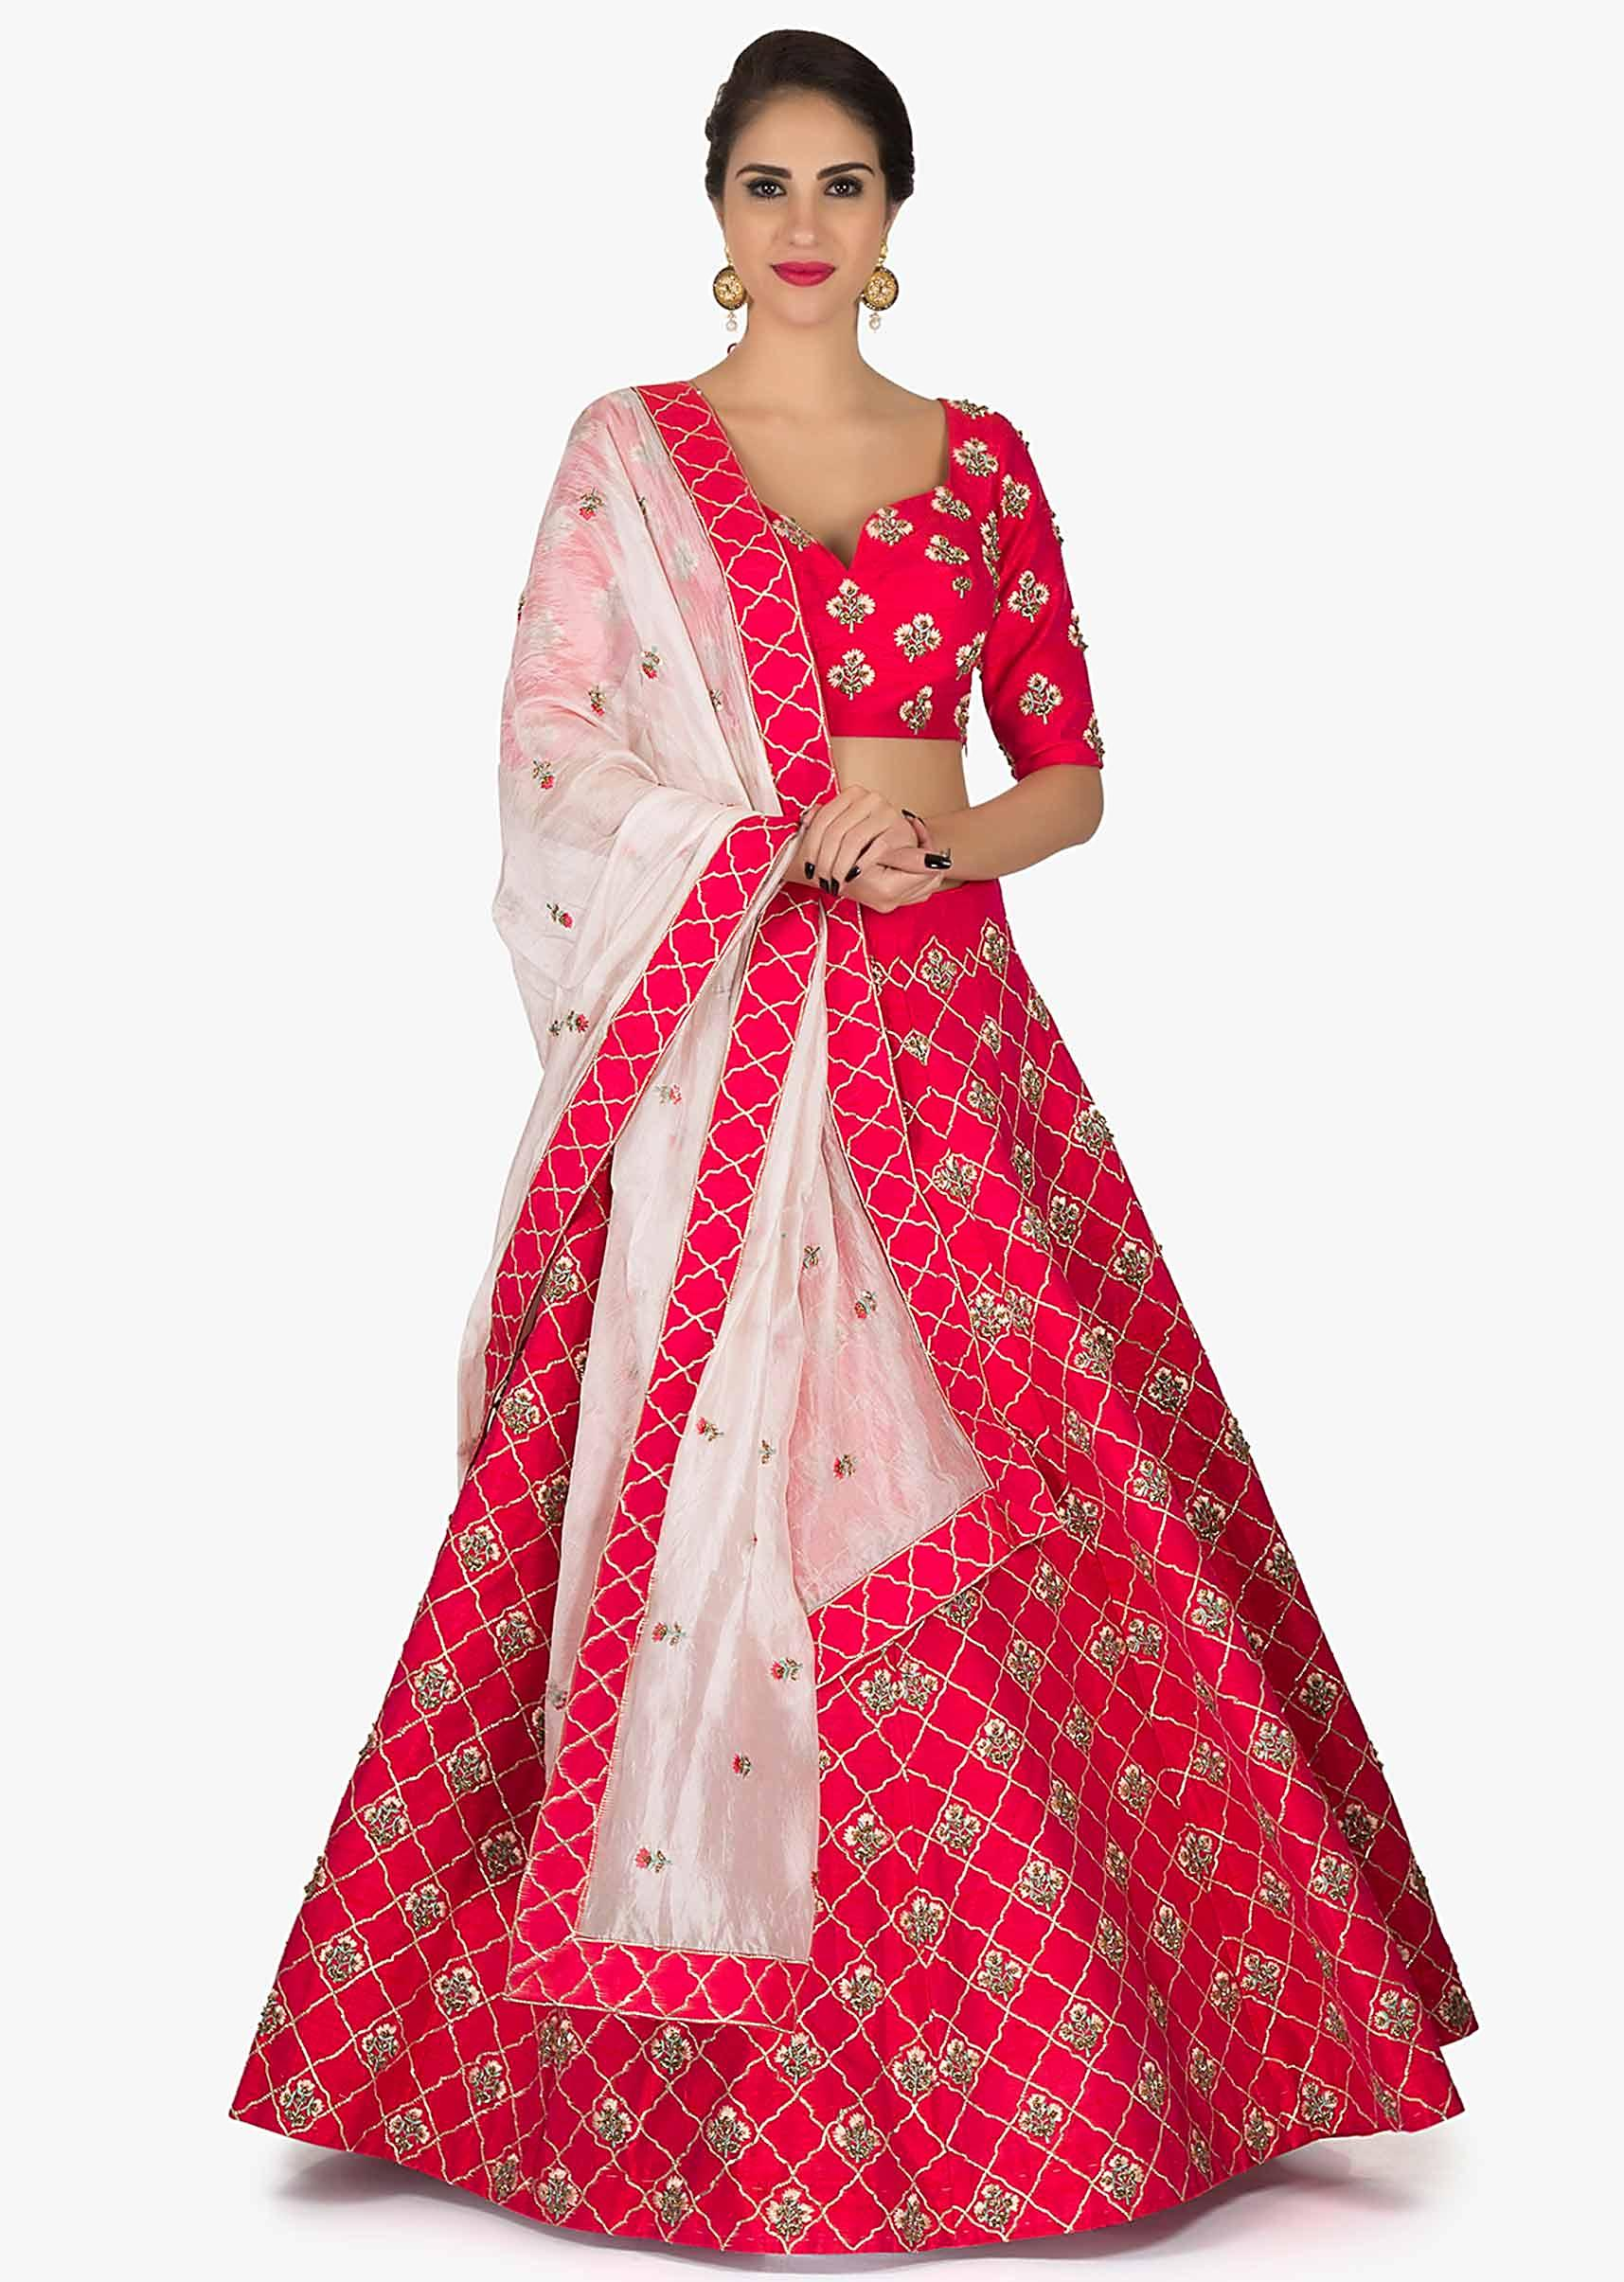 888adc33ec5b5 Rani pink lehenga in silk with a ready blouse flaunting the zari zardosi  work only on